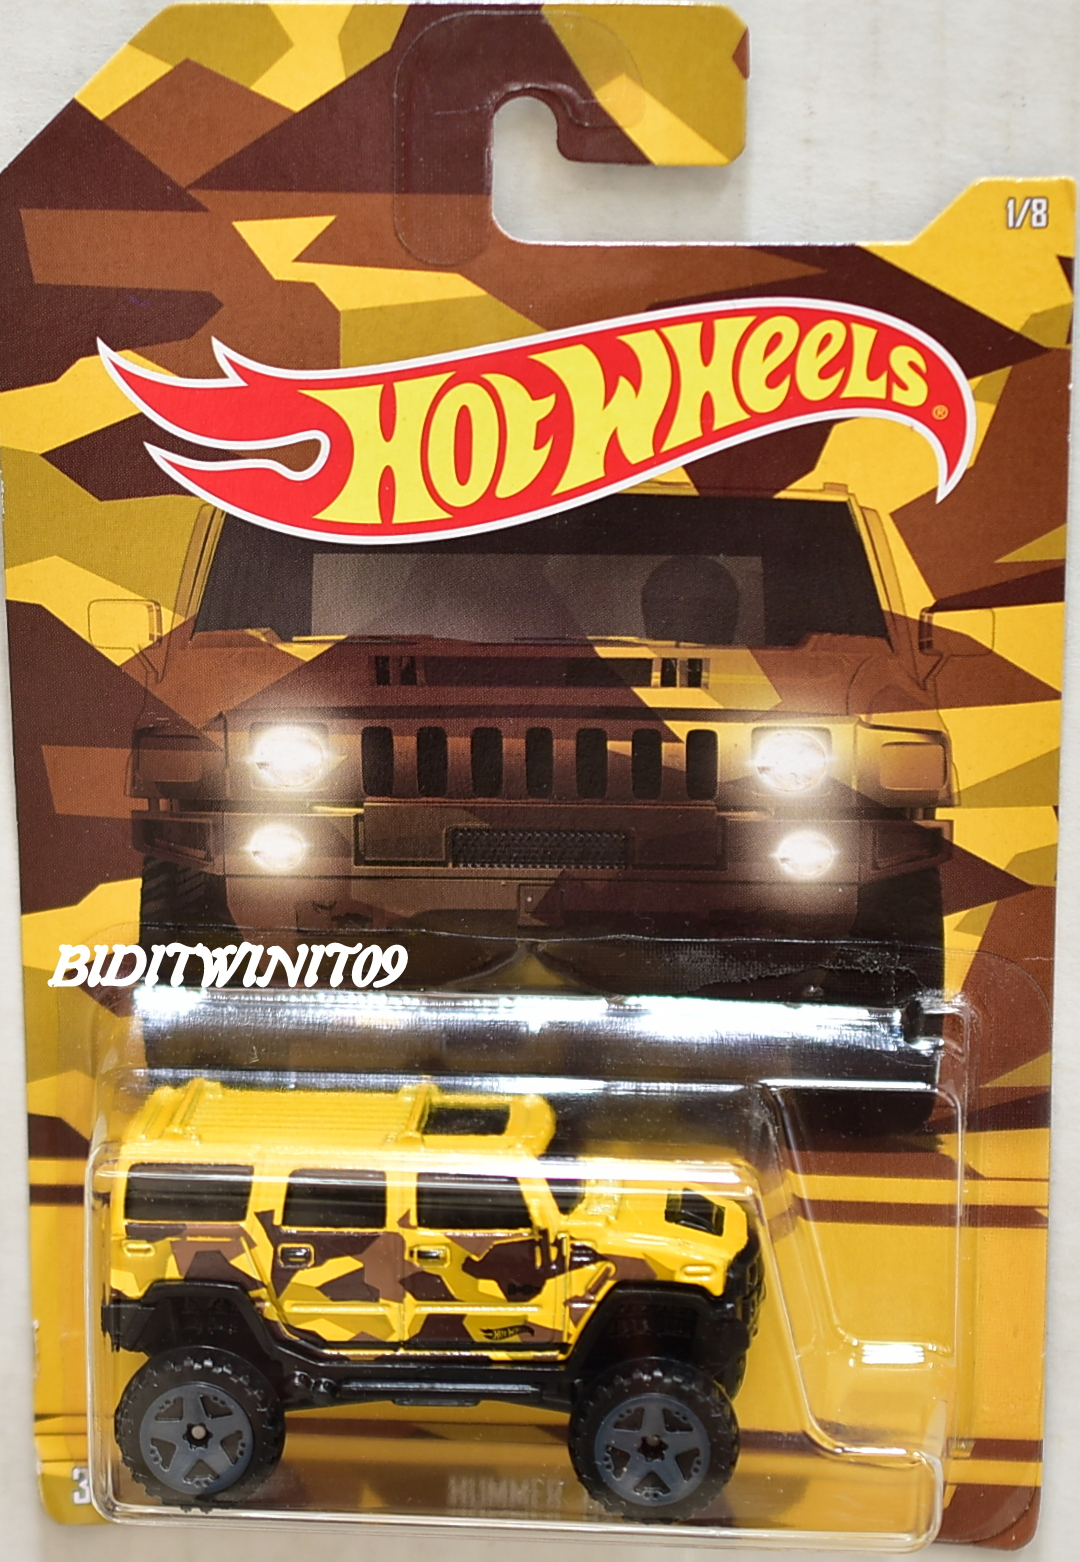 HOT WHEELS CAMOUFLAGE WALMART EXCLUSIVE HUMMER H2 #1/8